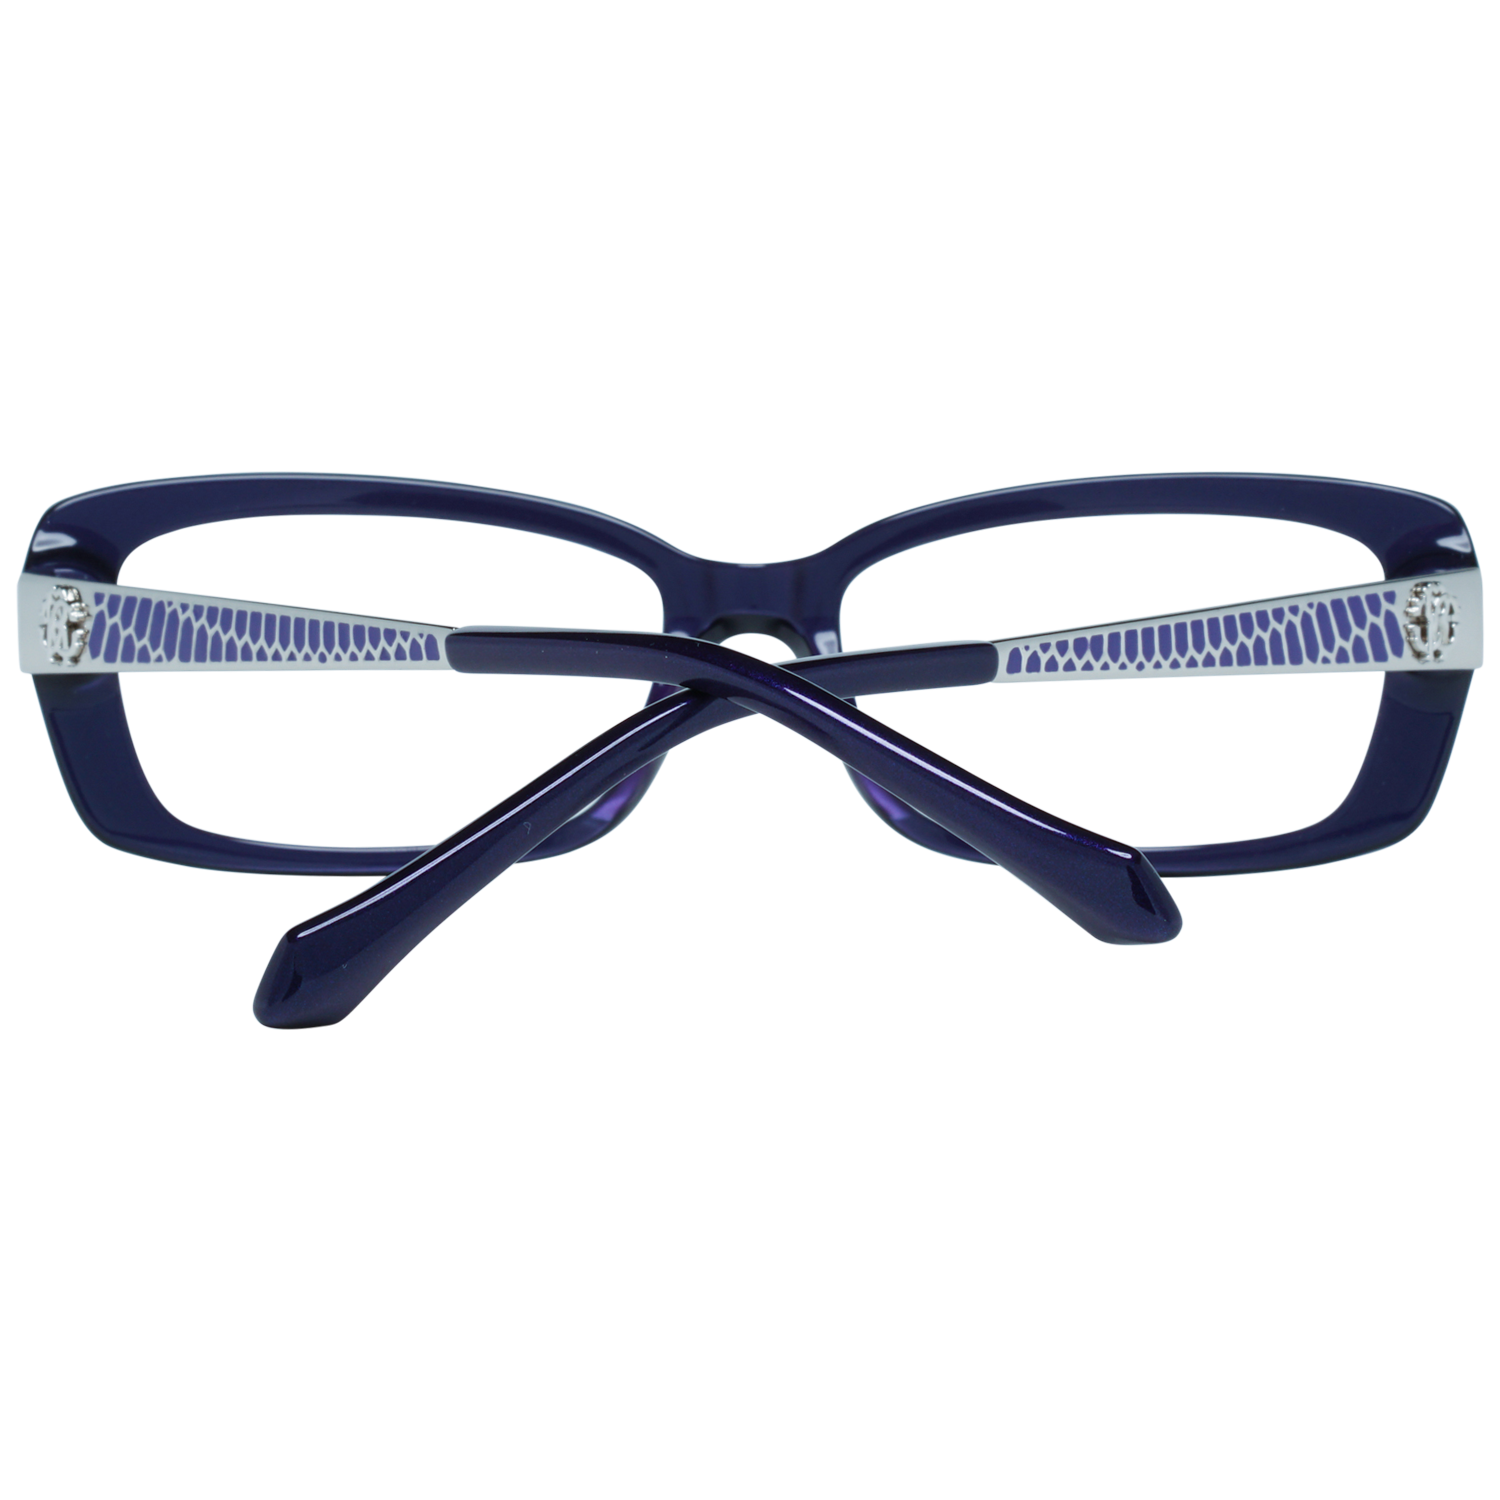 Roberto Cavalli Optical Frame RC0822 083 53 Women Blue